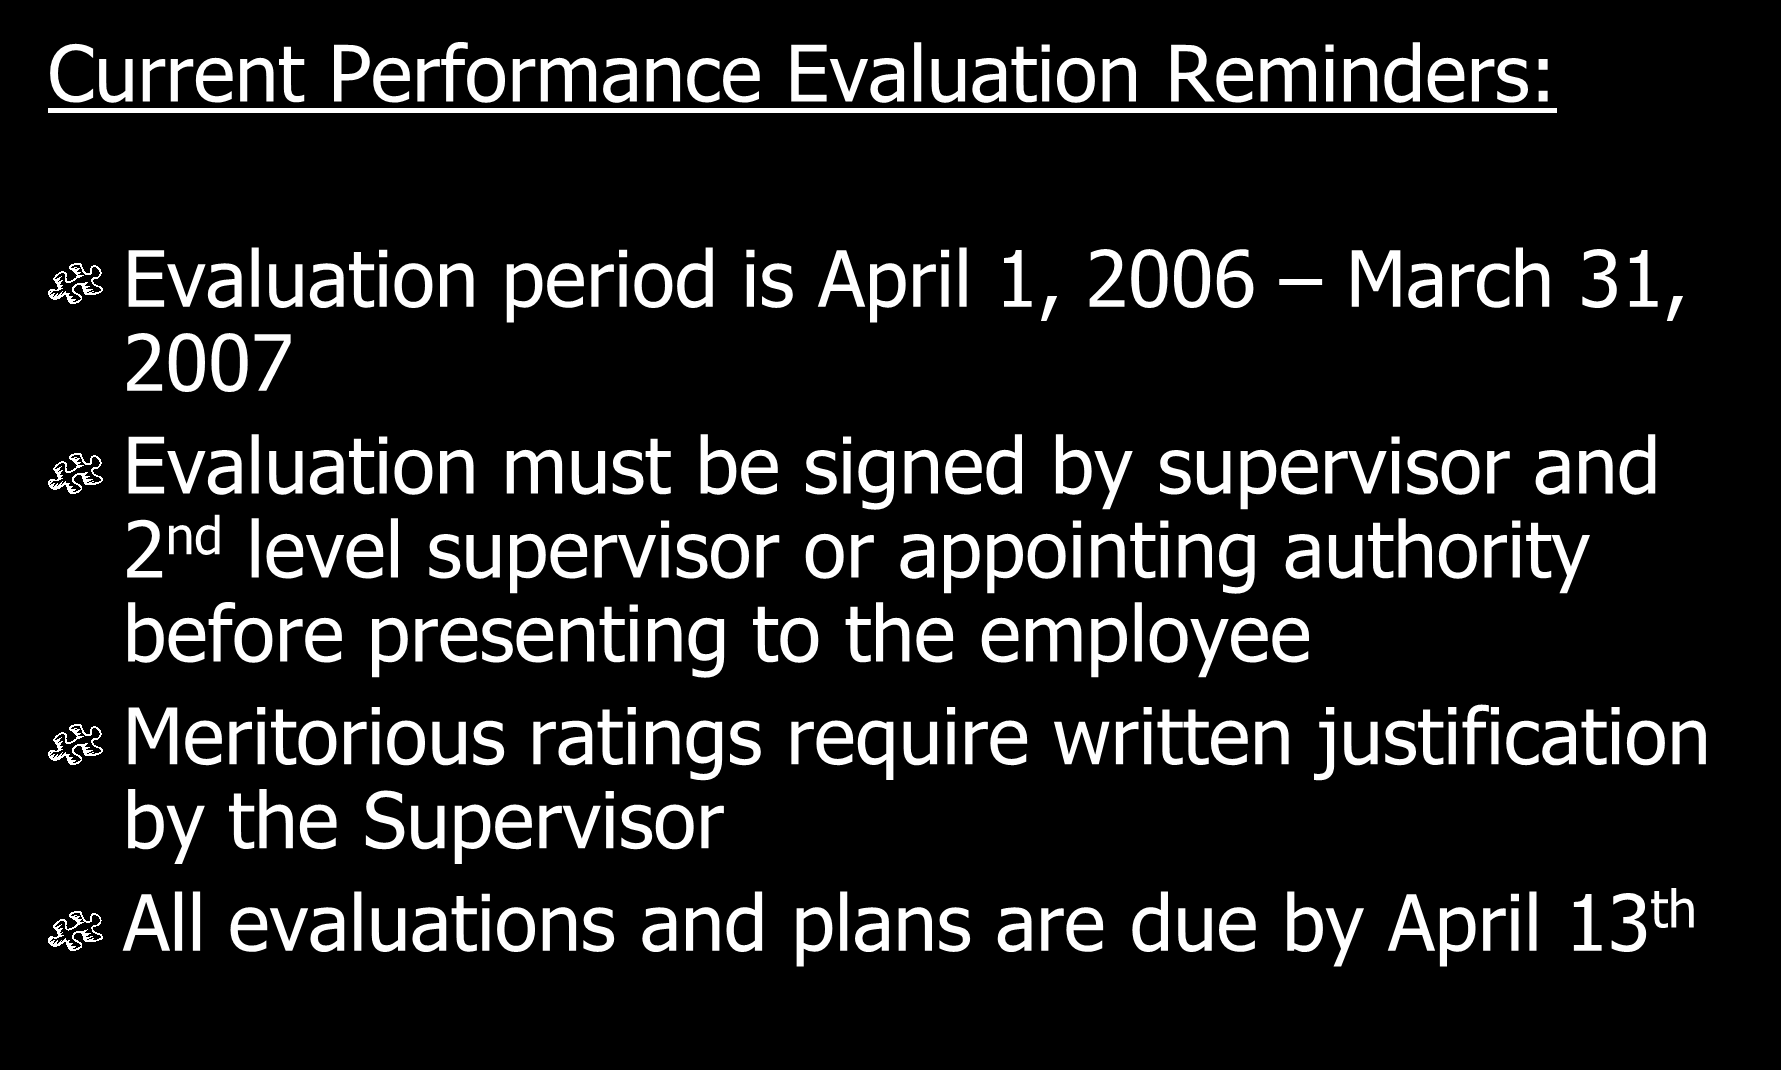 Current Performance Evaluation Reminders: Evaluation period is April 1, 2006 March 31, 2007 Evaluation must be signed by supervisor and 2 nd level supervisor or